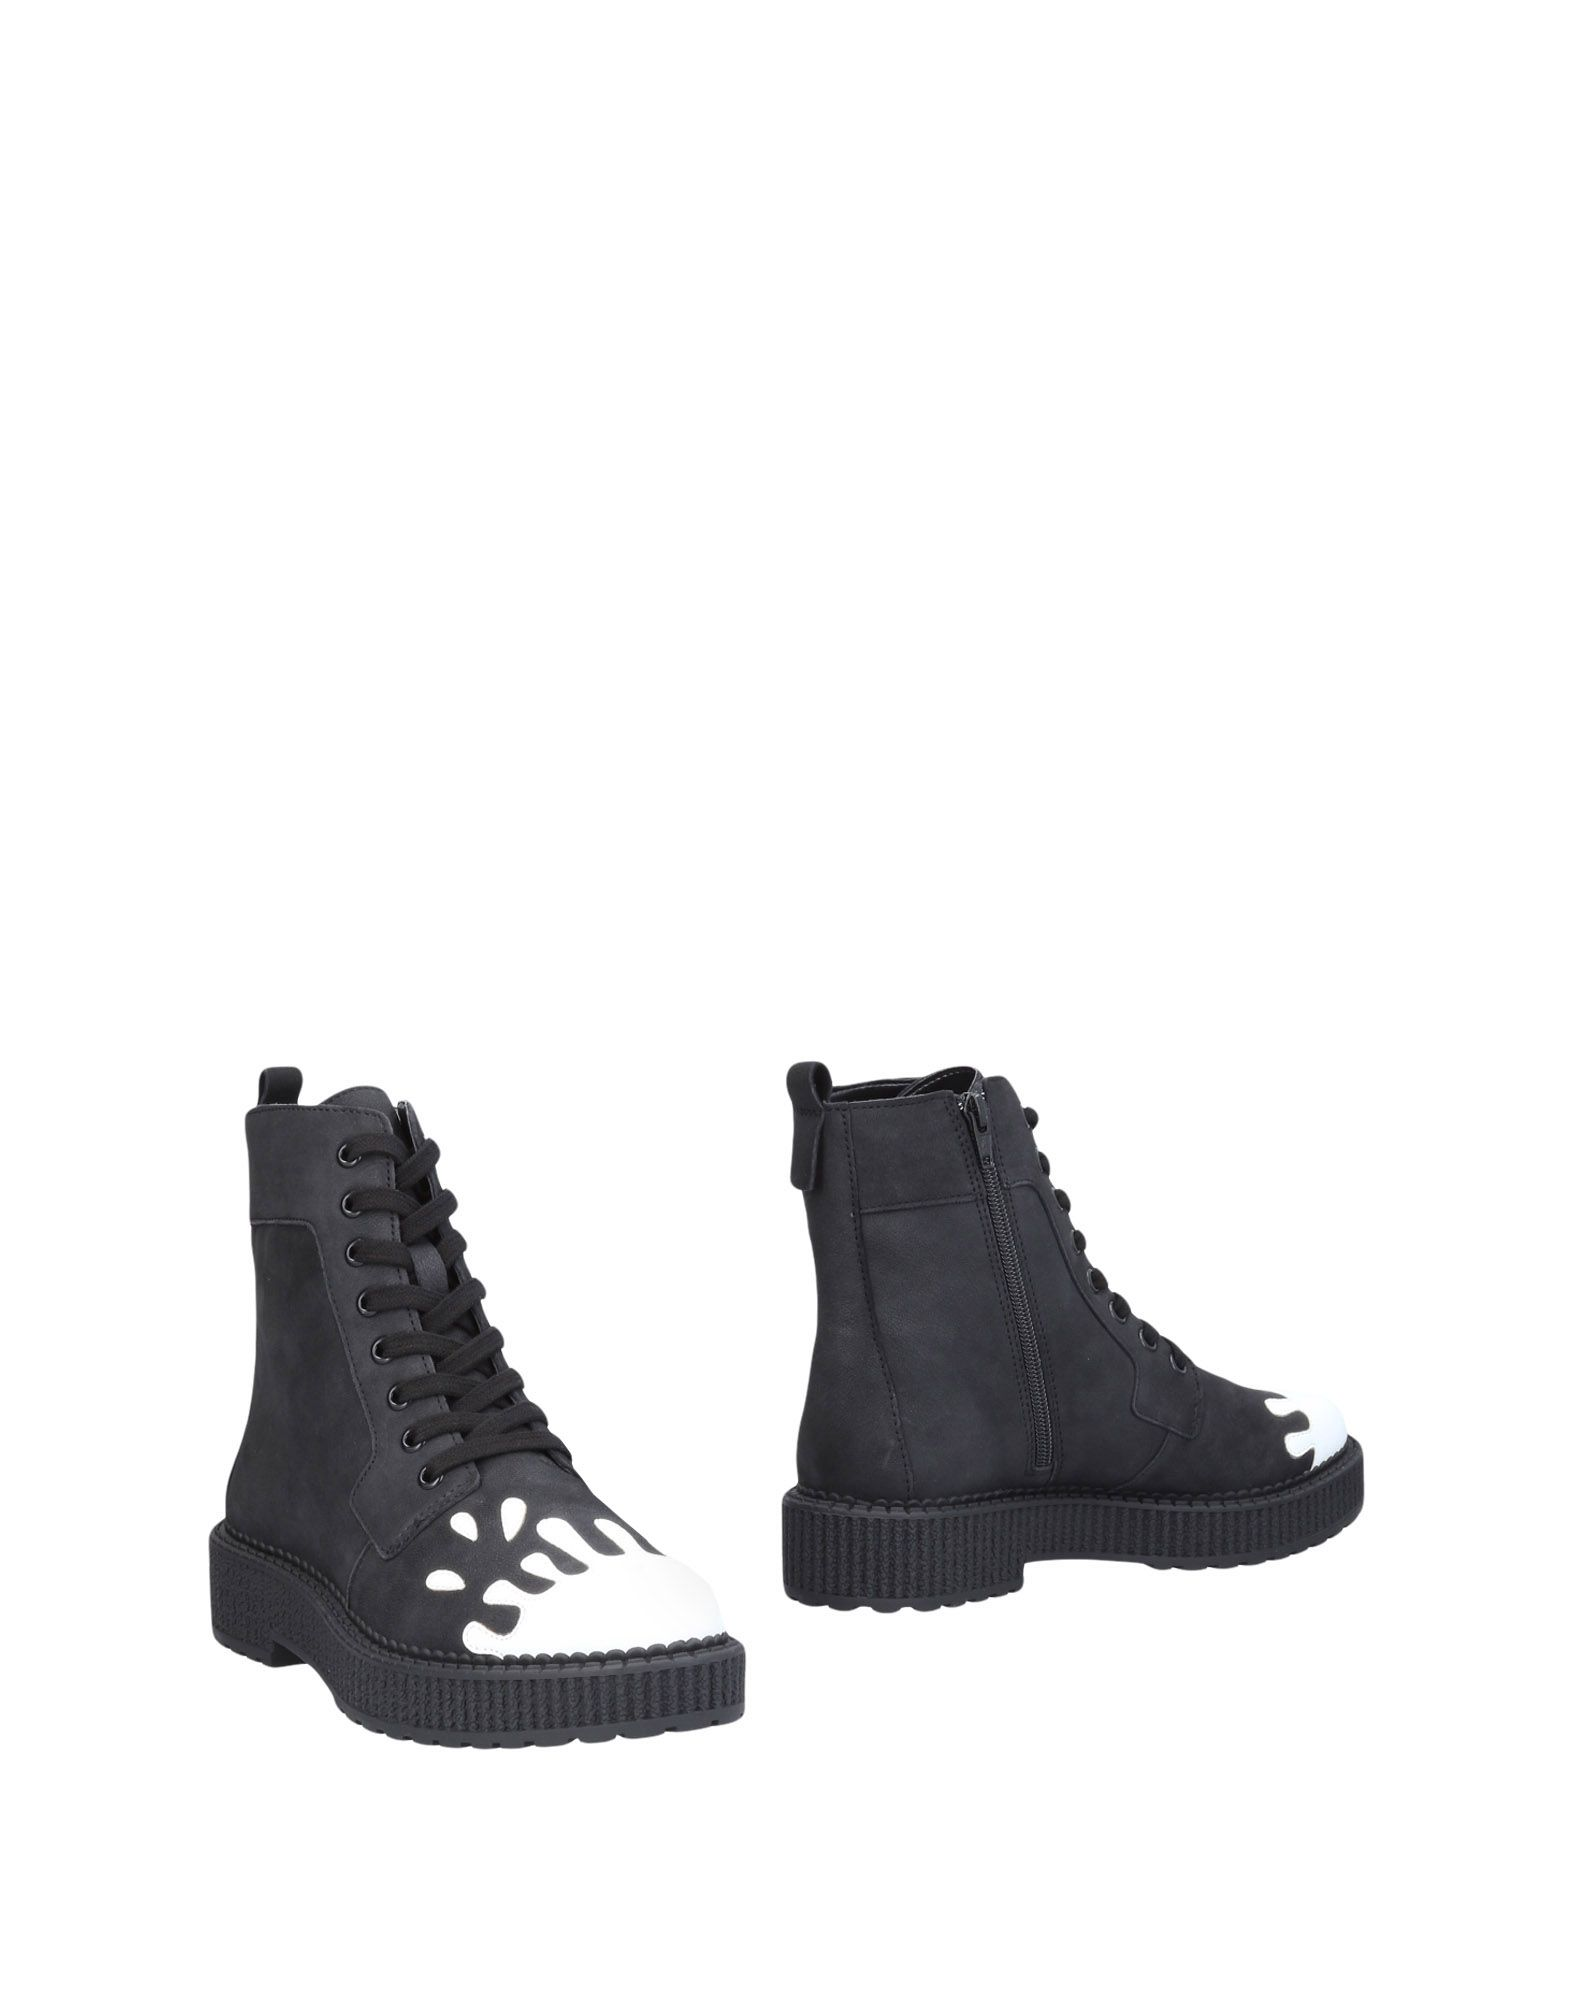 Katy Perry Ankle Ankle Ankle Boot - Women Katy Perry Ankle Boots online on  United Kingdom - 11460240DK 6b34ef